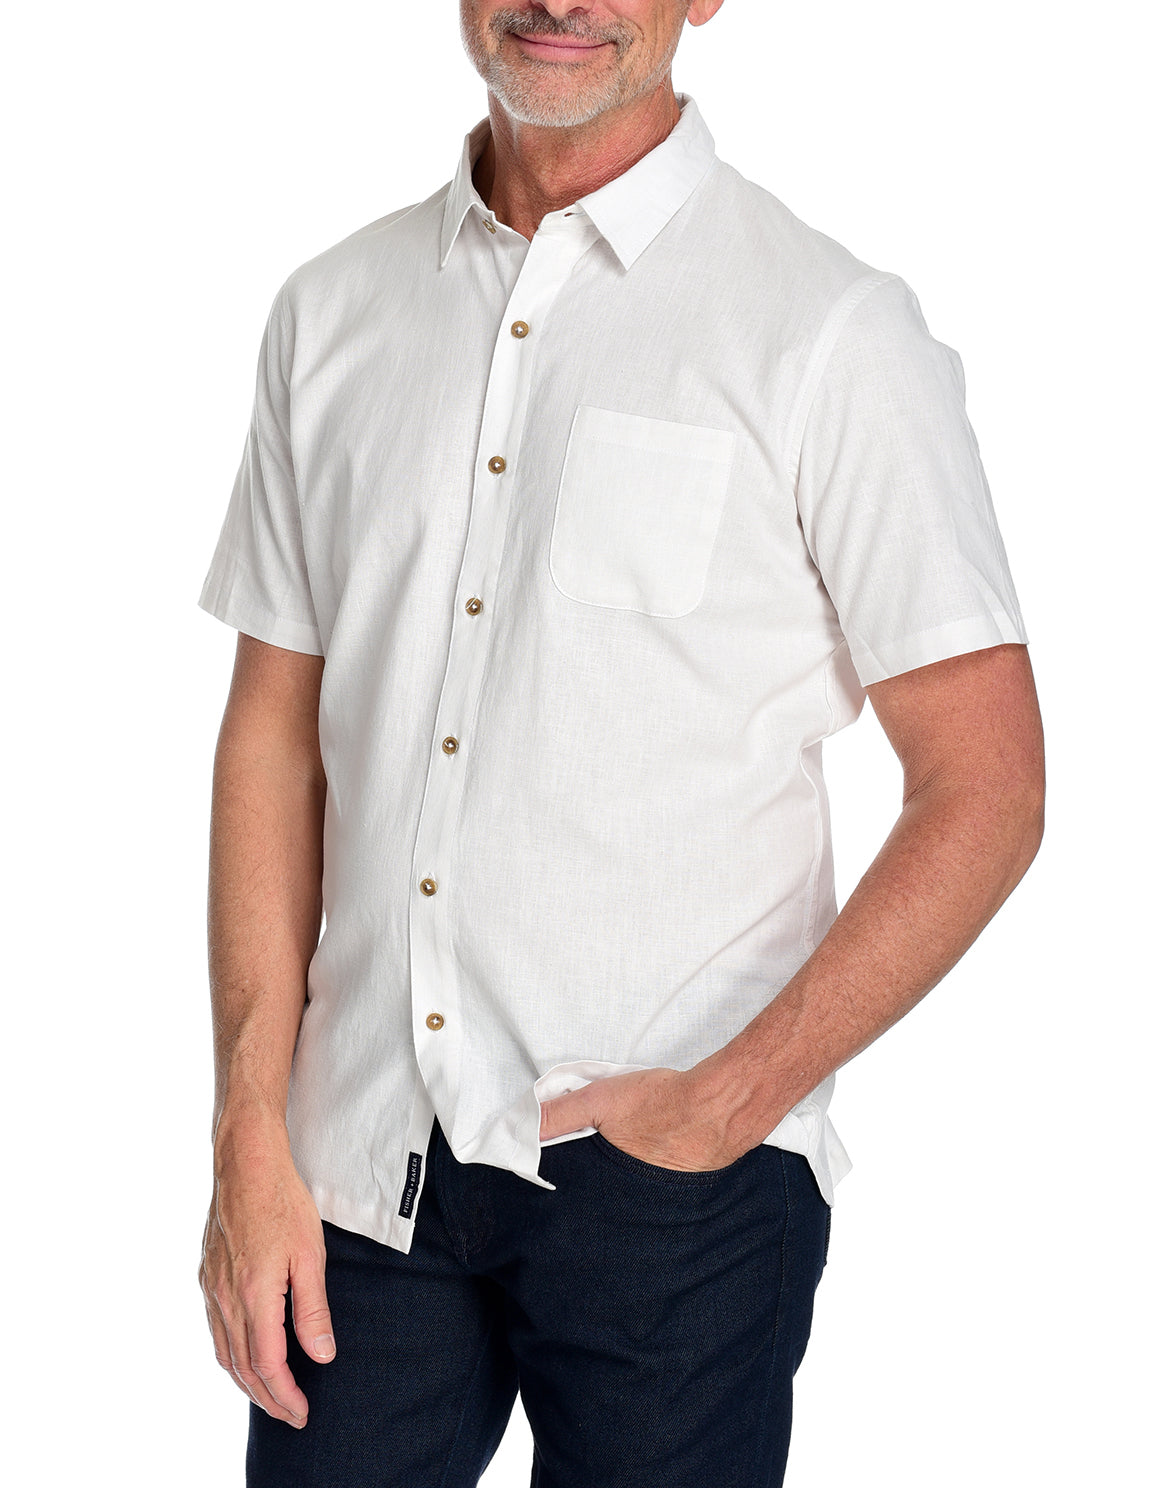 Men's Short Sleeve Shirt the Radium Shirt by Fisher + Baker White